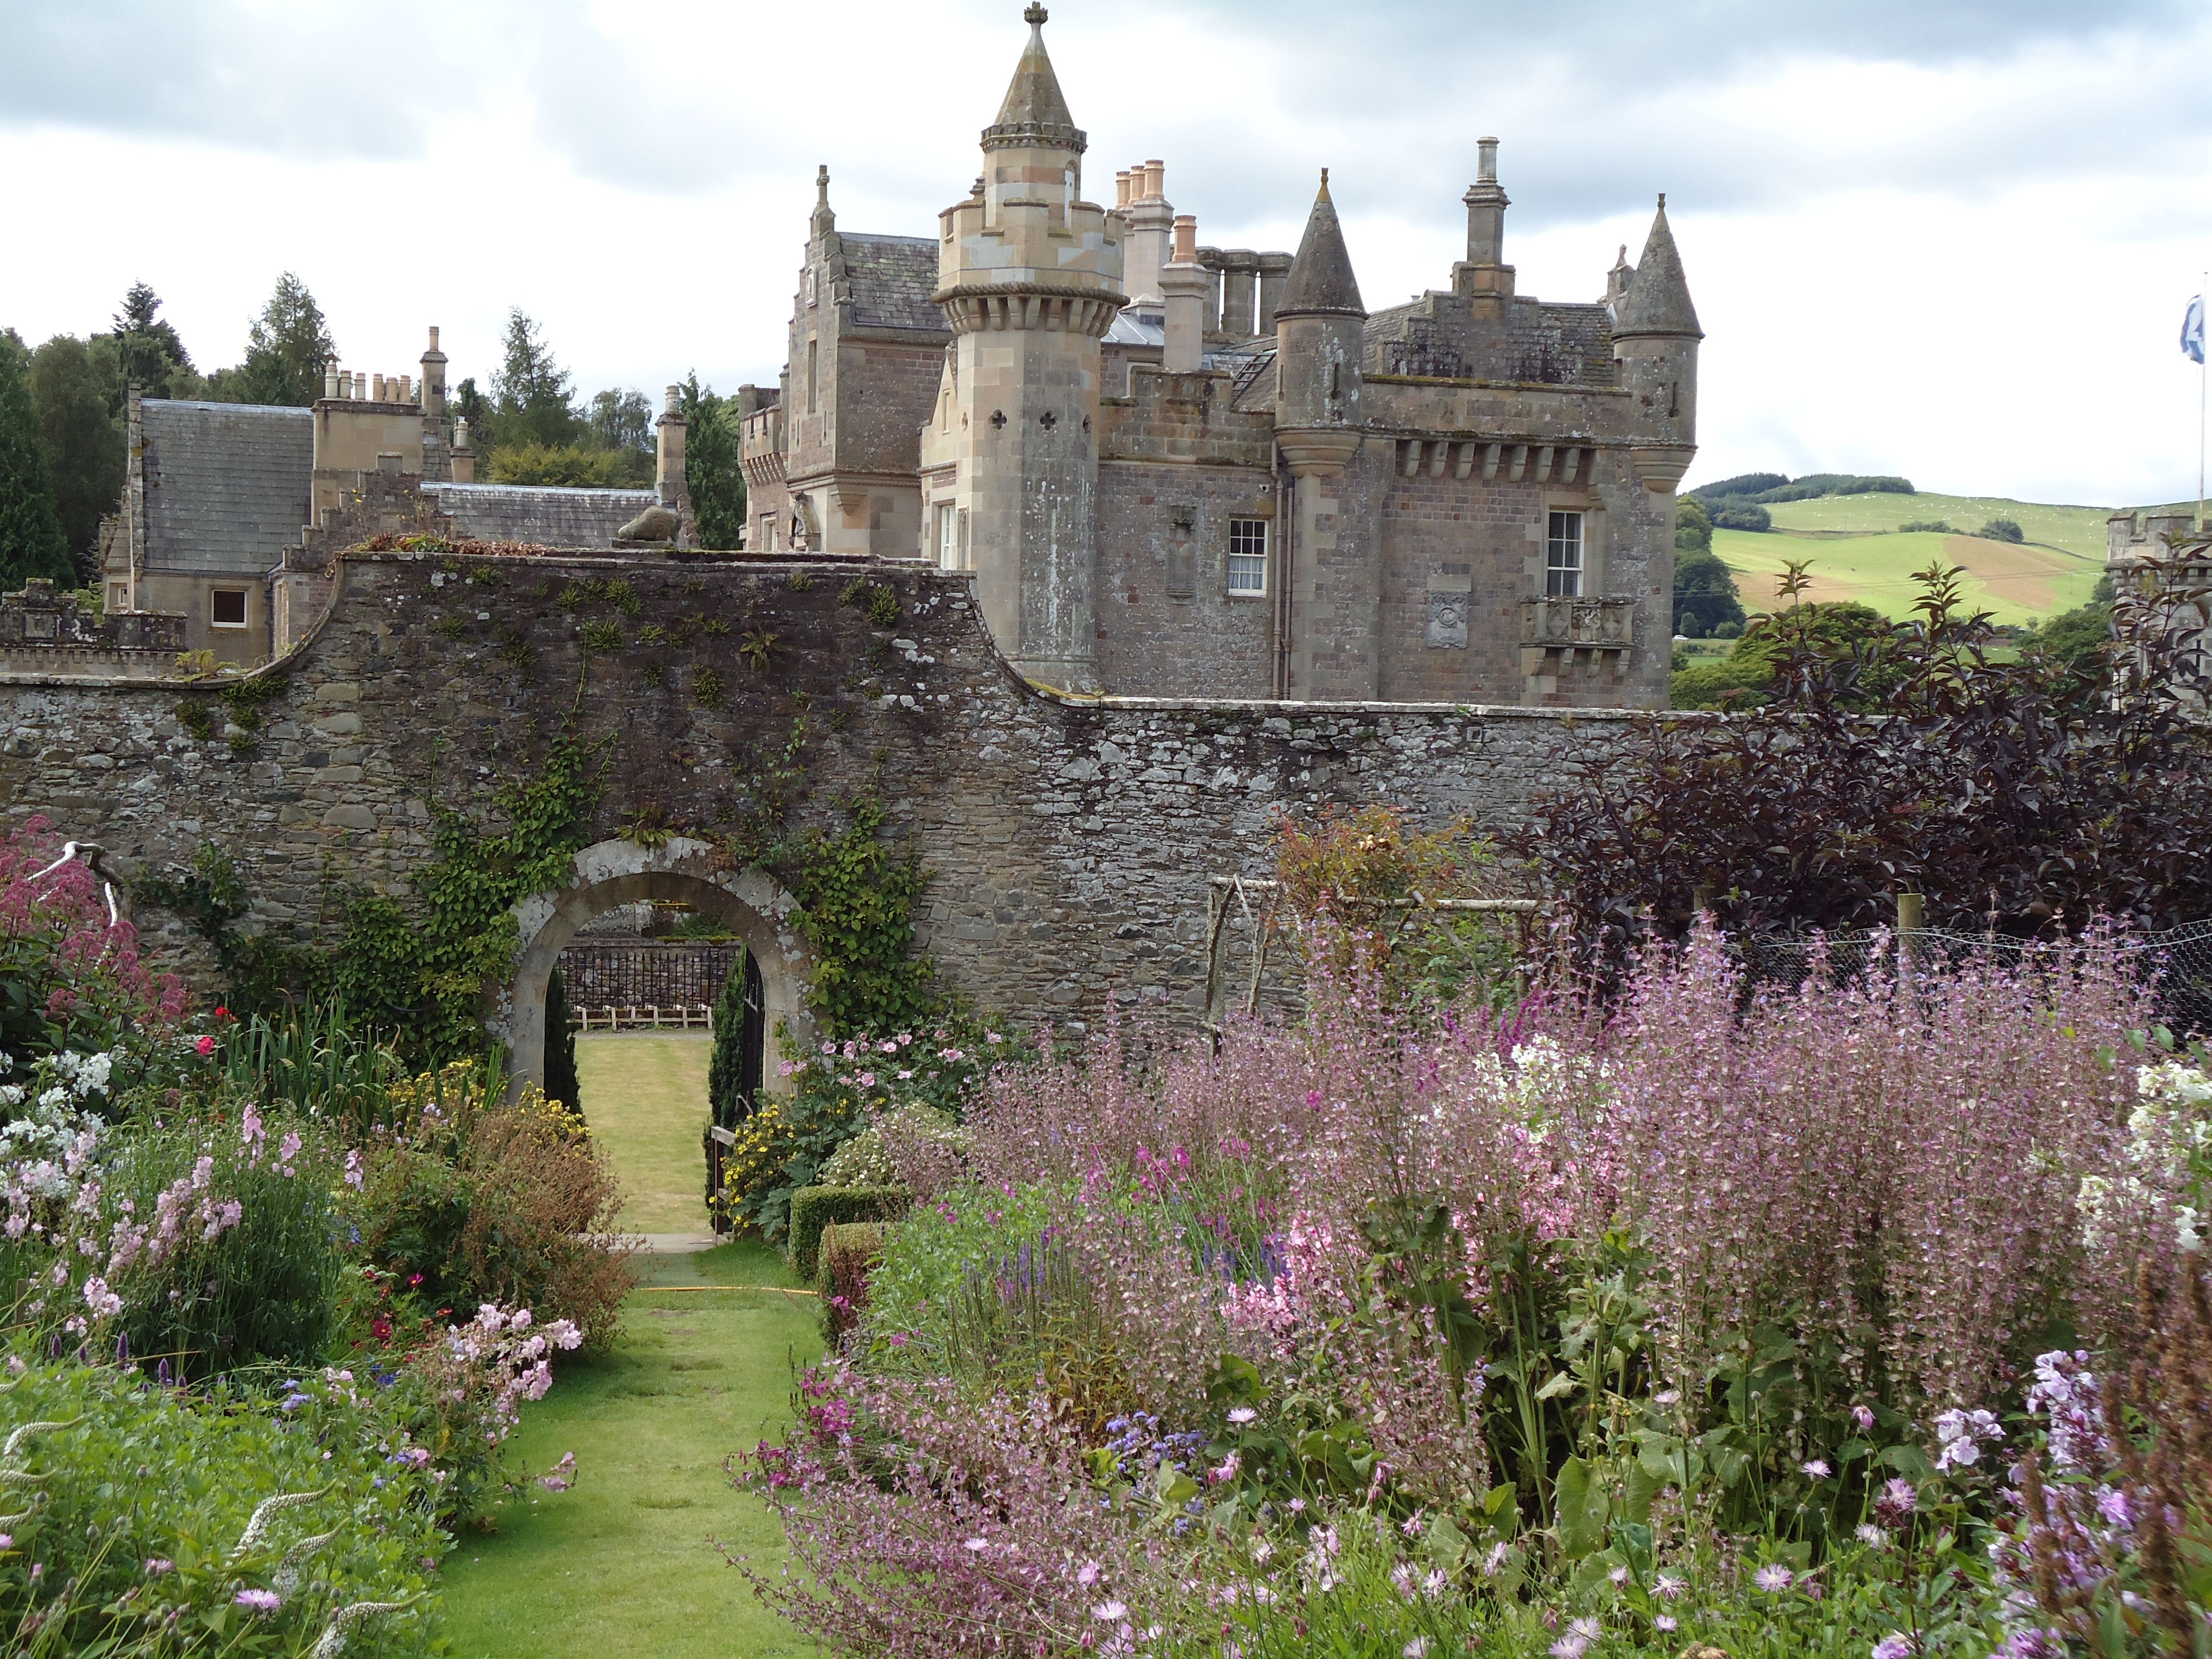 One Of The Beautiful Castles In Scotland Castles Pinterest Scotland And Castles